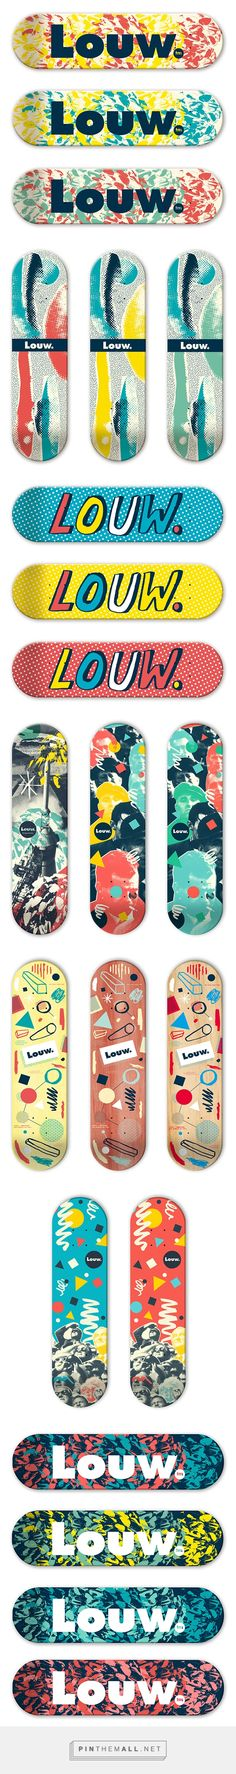 It's Nice That   Jorge Primo's delicious deck designs for Louw skateboards